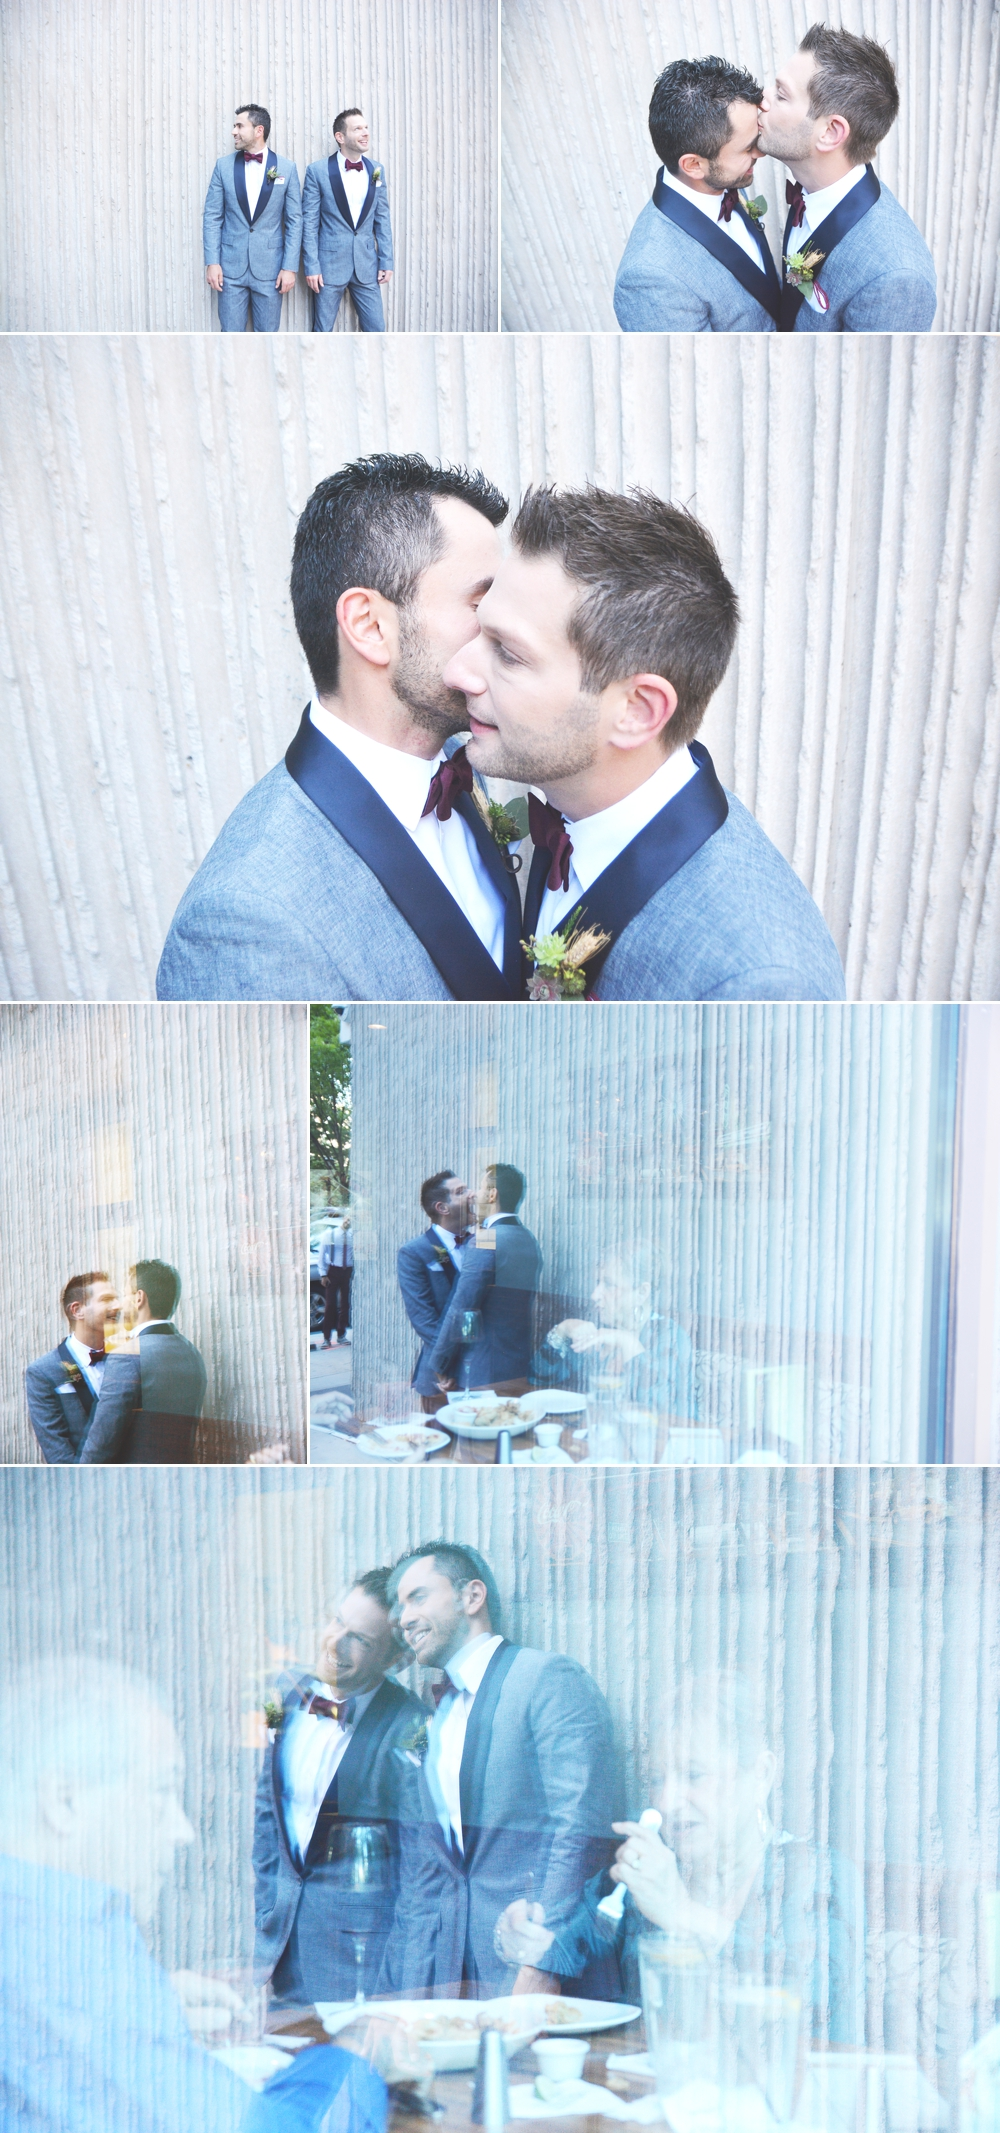 terminus-330-lgbt-wedding-photography-six-hearts-photography021